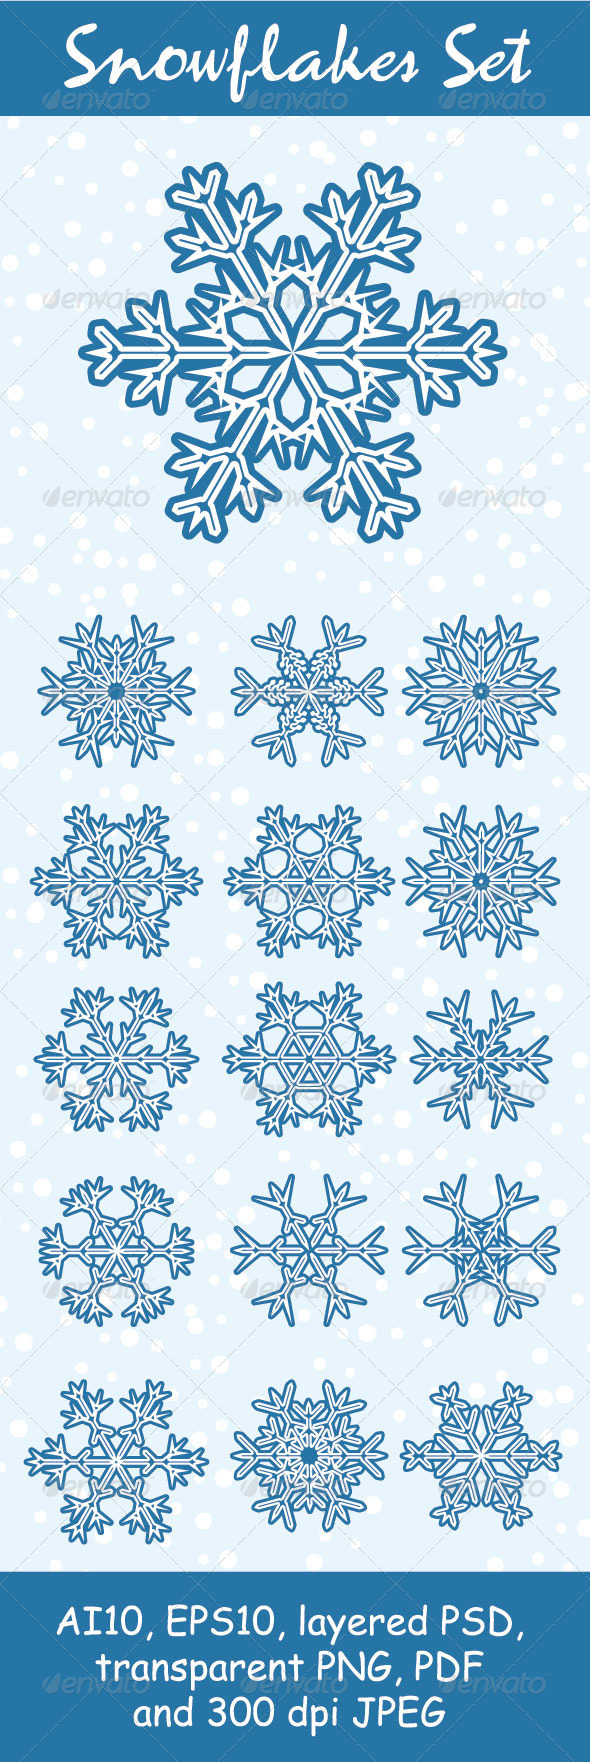 GraphicRiver Snowflakes Set 3529242